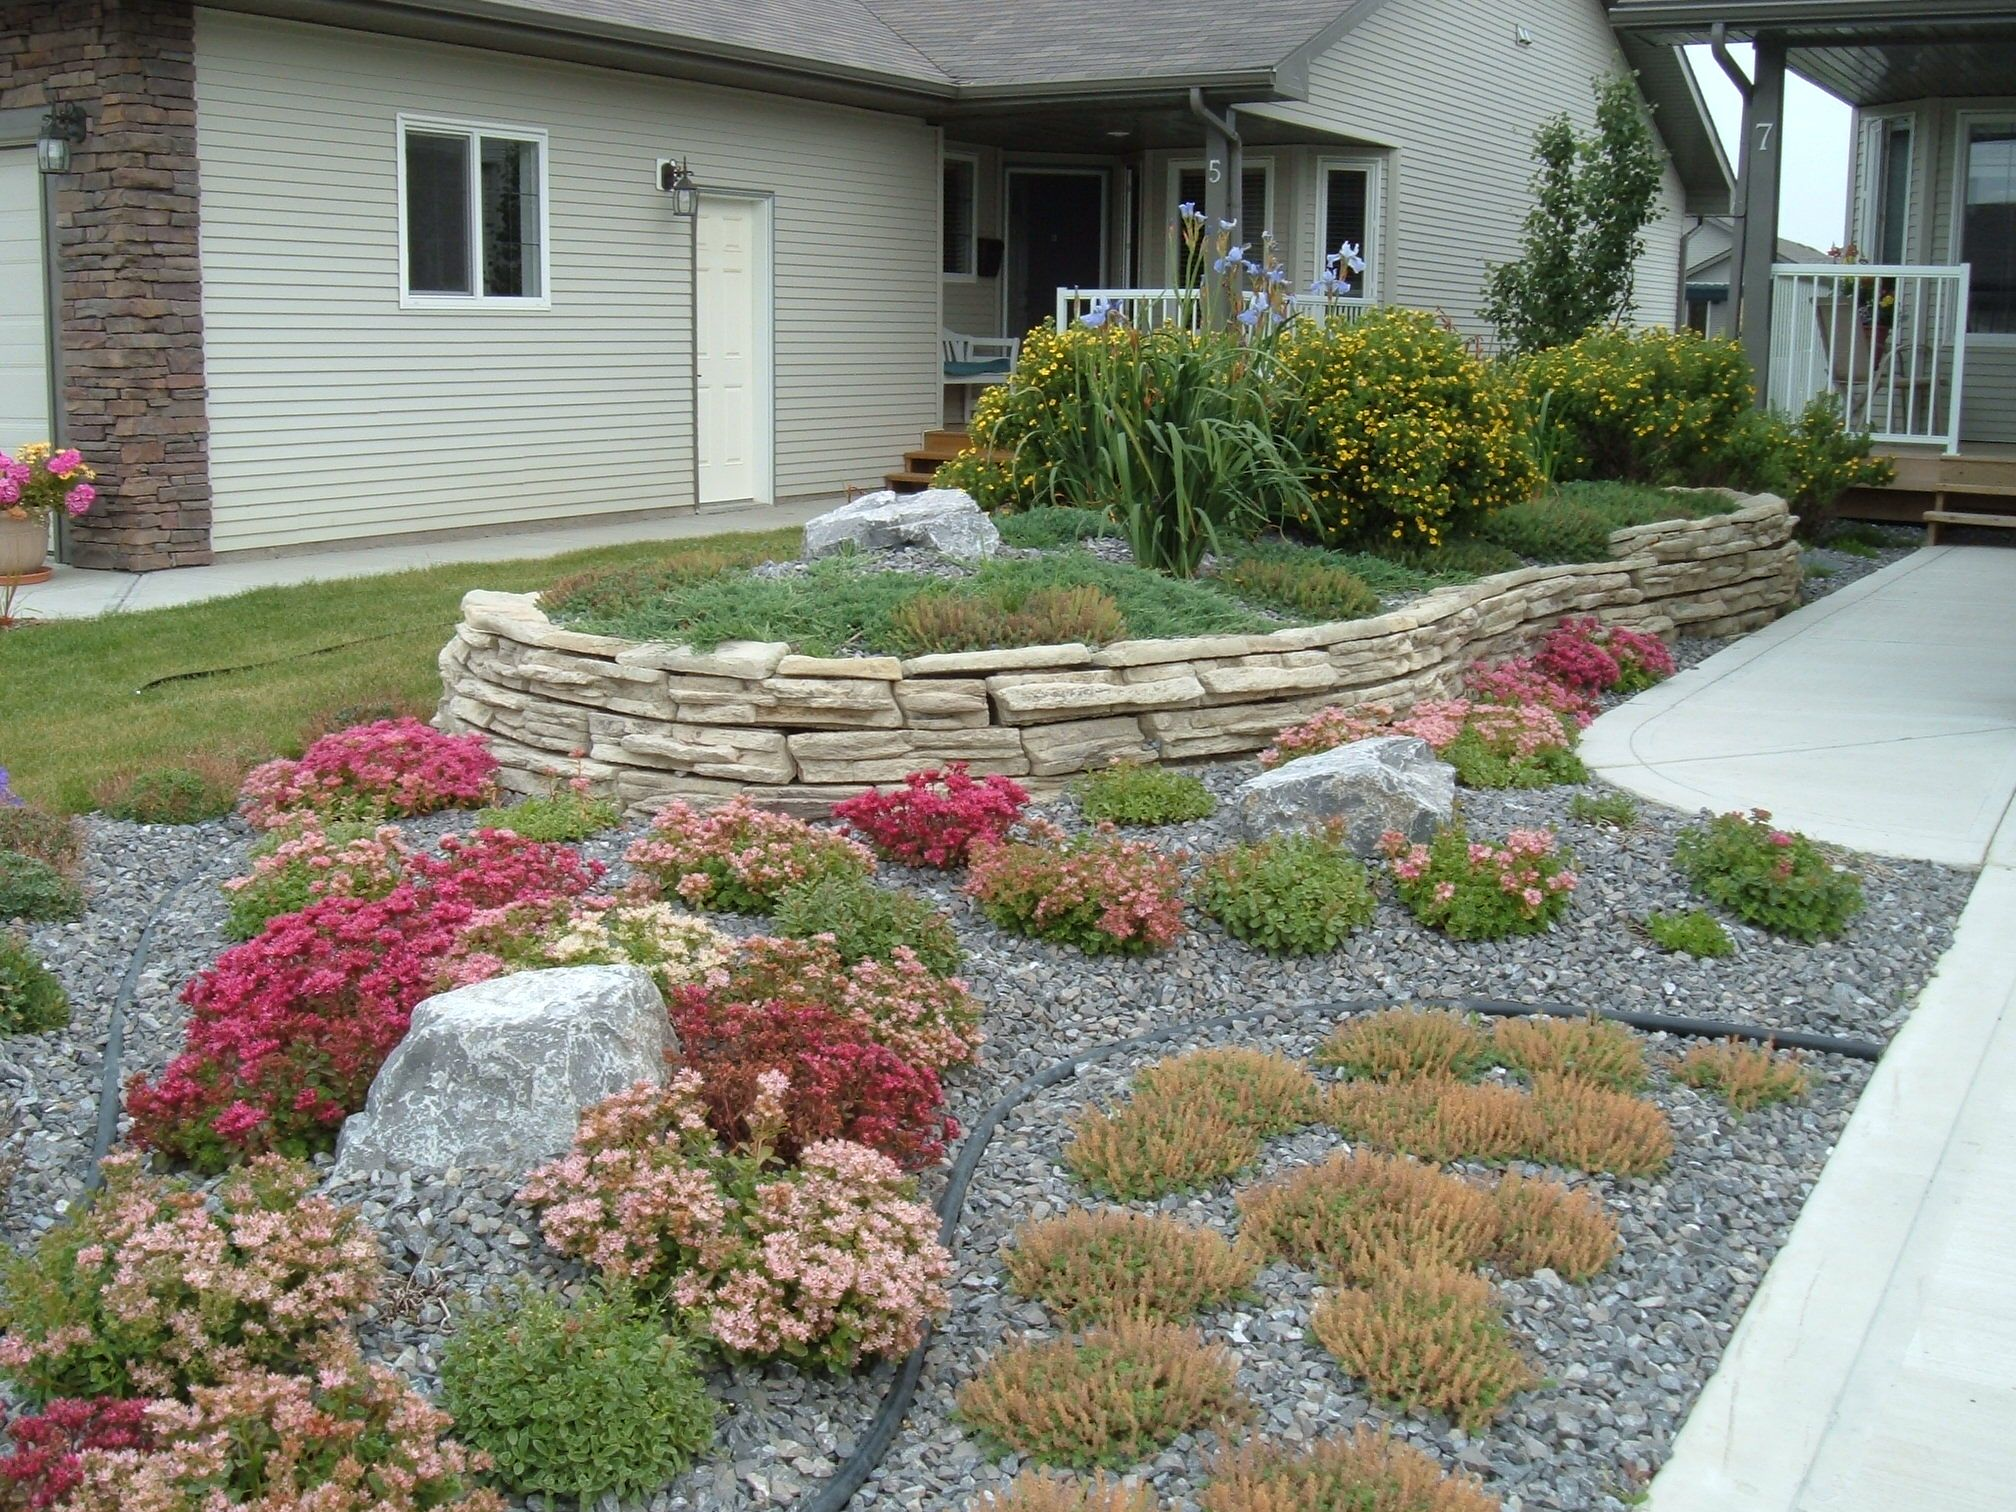 Minimal maintenance landscaping a no lawn front yard with for Ideas for front yard plants